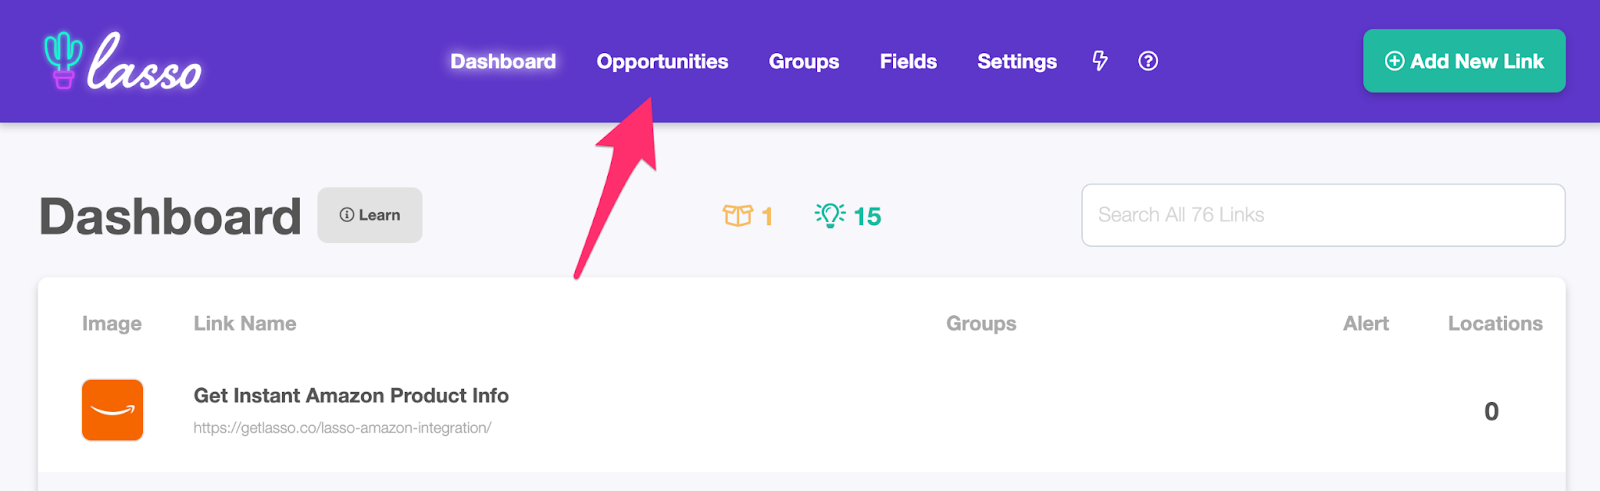 lasso dashboard and where to find the opportunities tab